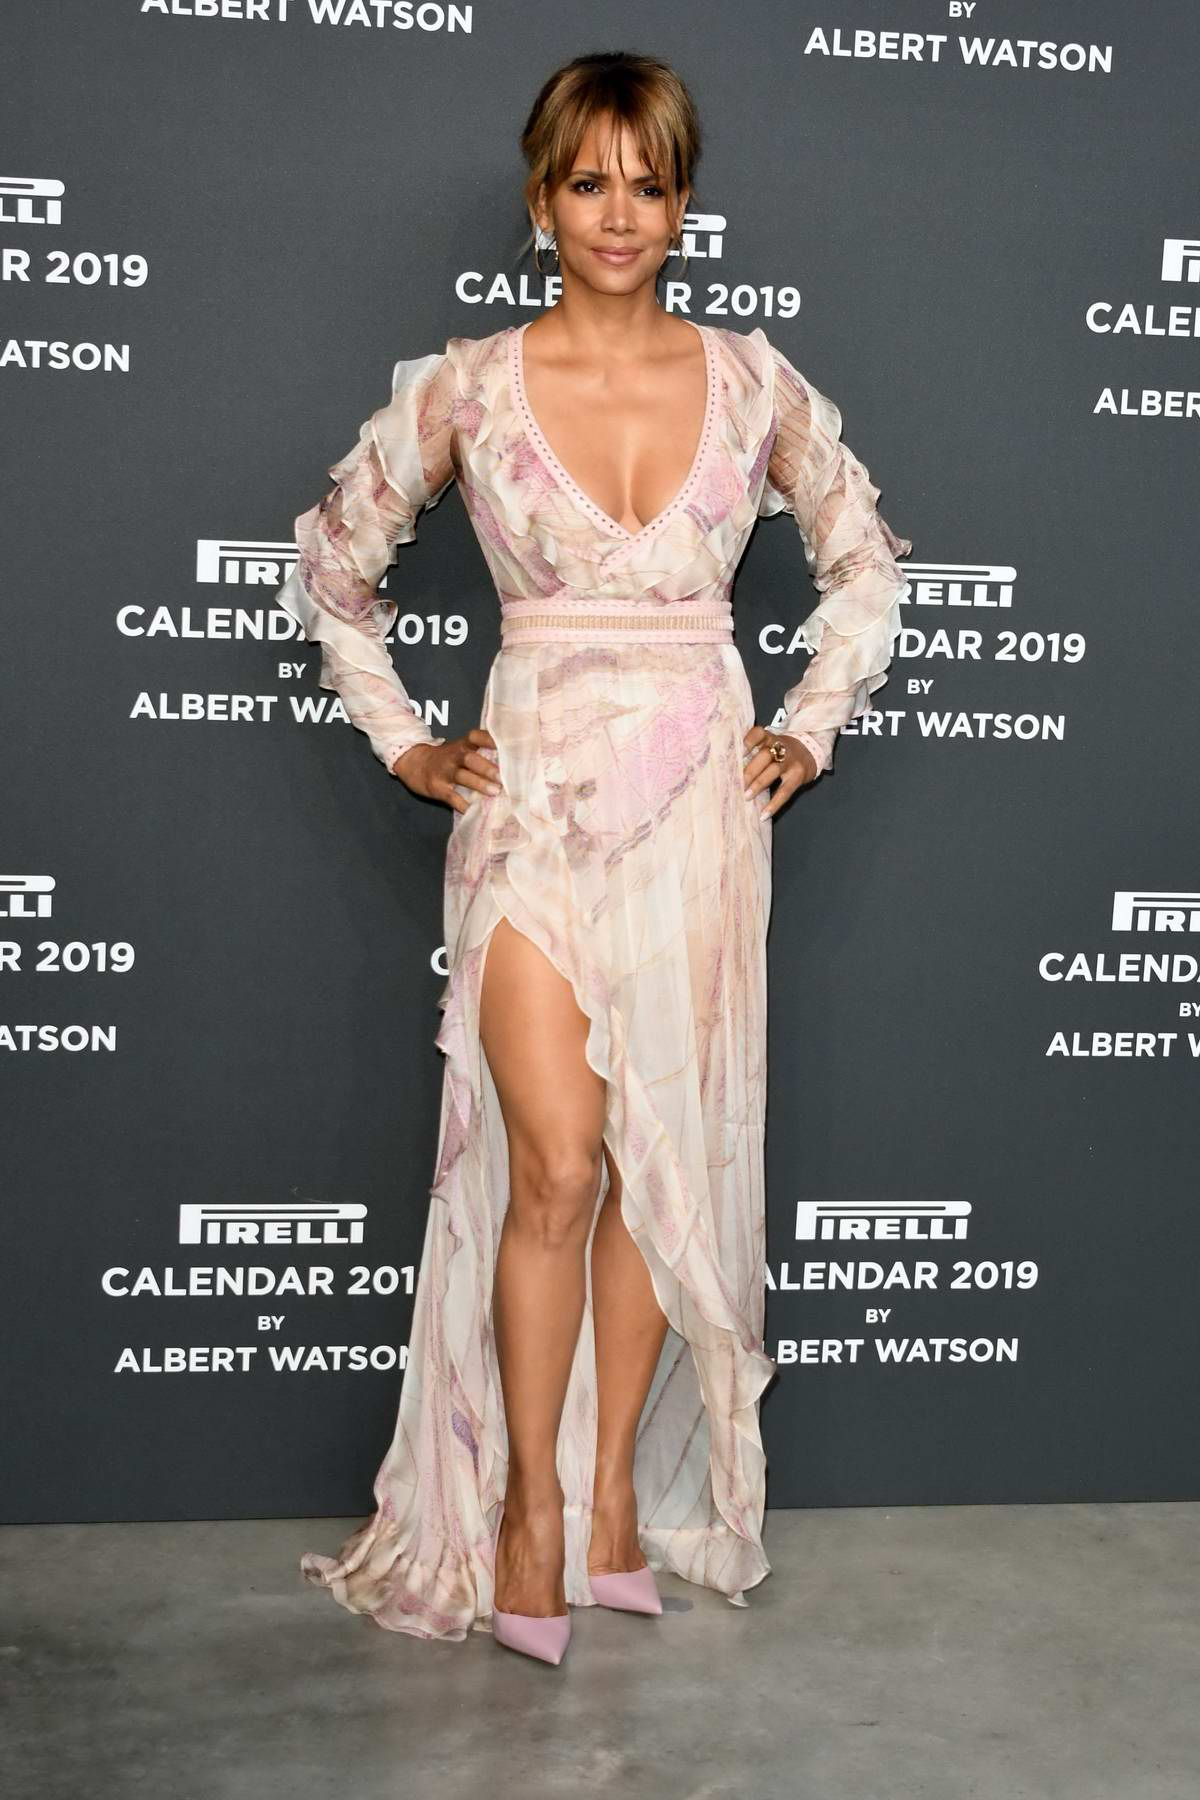 Halle Berry attends 2019 Pirelli Calendar launch gala at Hangar Bicocca in Milan, Italy